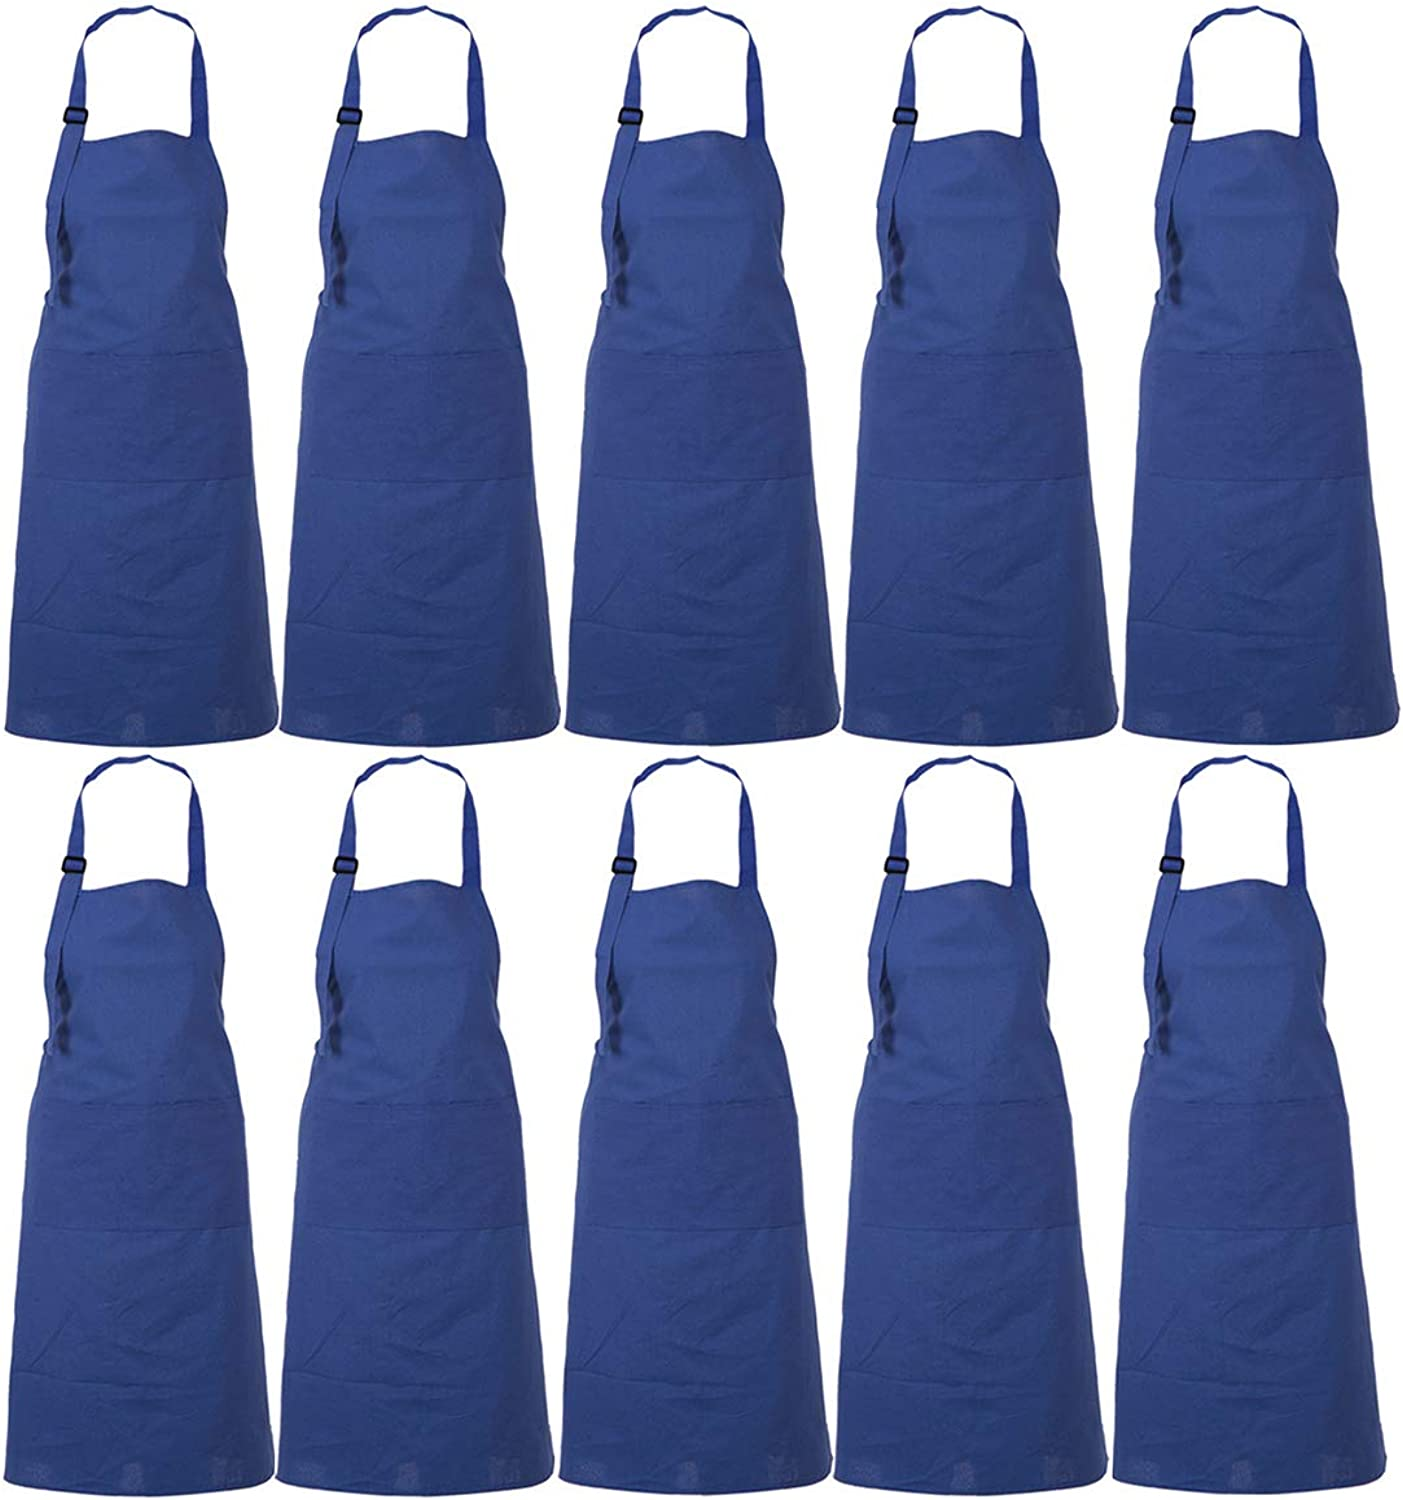 RAJRANG BRINGING RAJASTHAN TO YOU Apron Wholesale Lot of 10 - Professional Restaurant Cooking Chef Aprons for Women - Navy bluee - 35  x 27